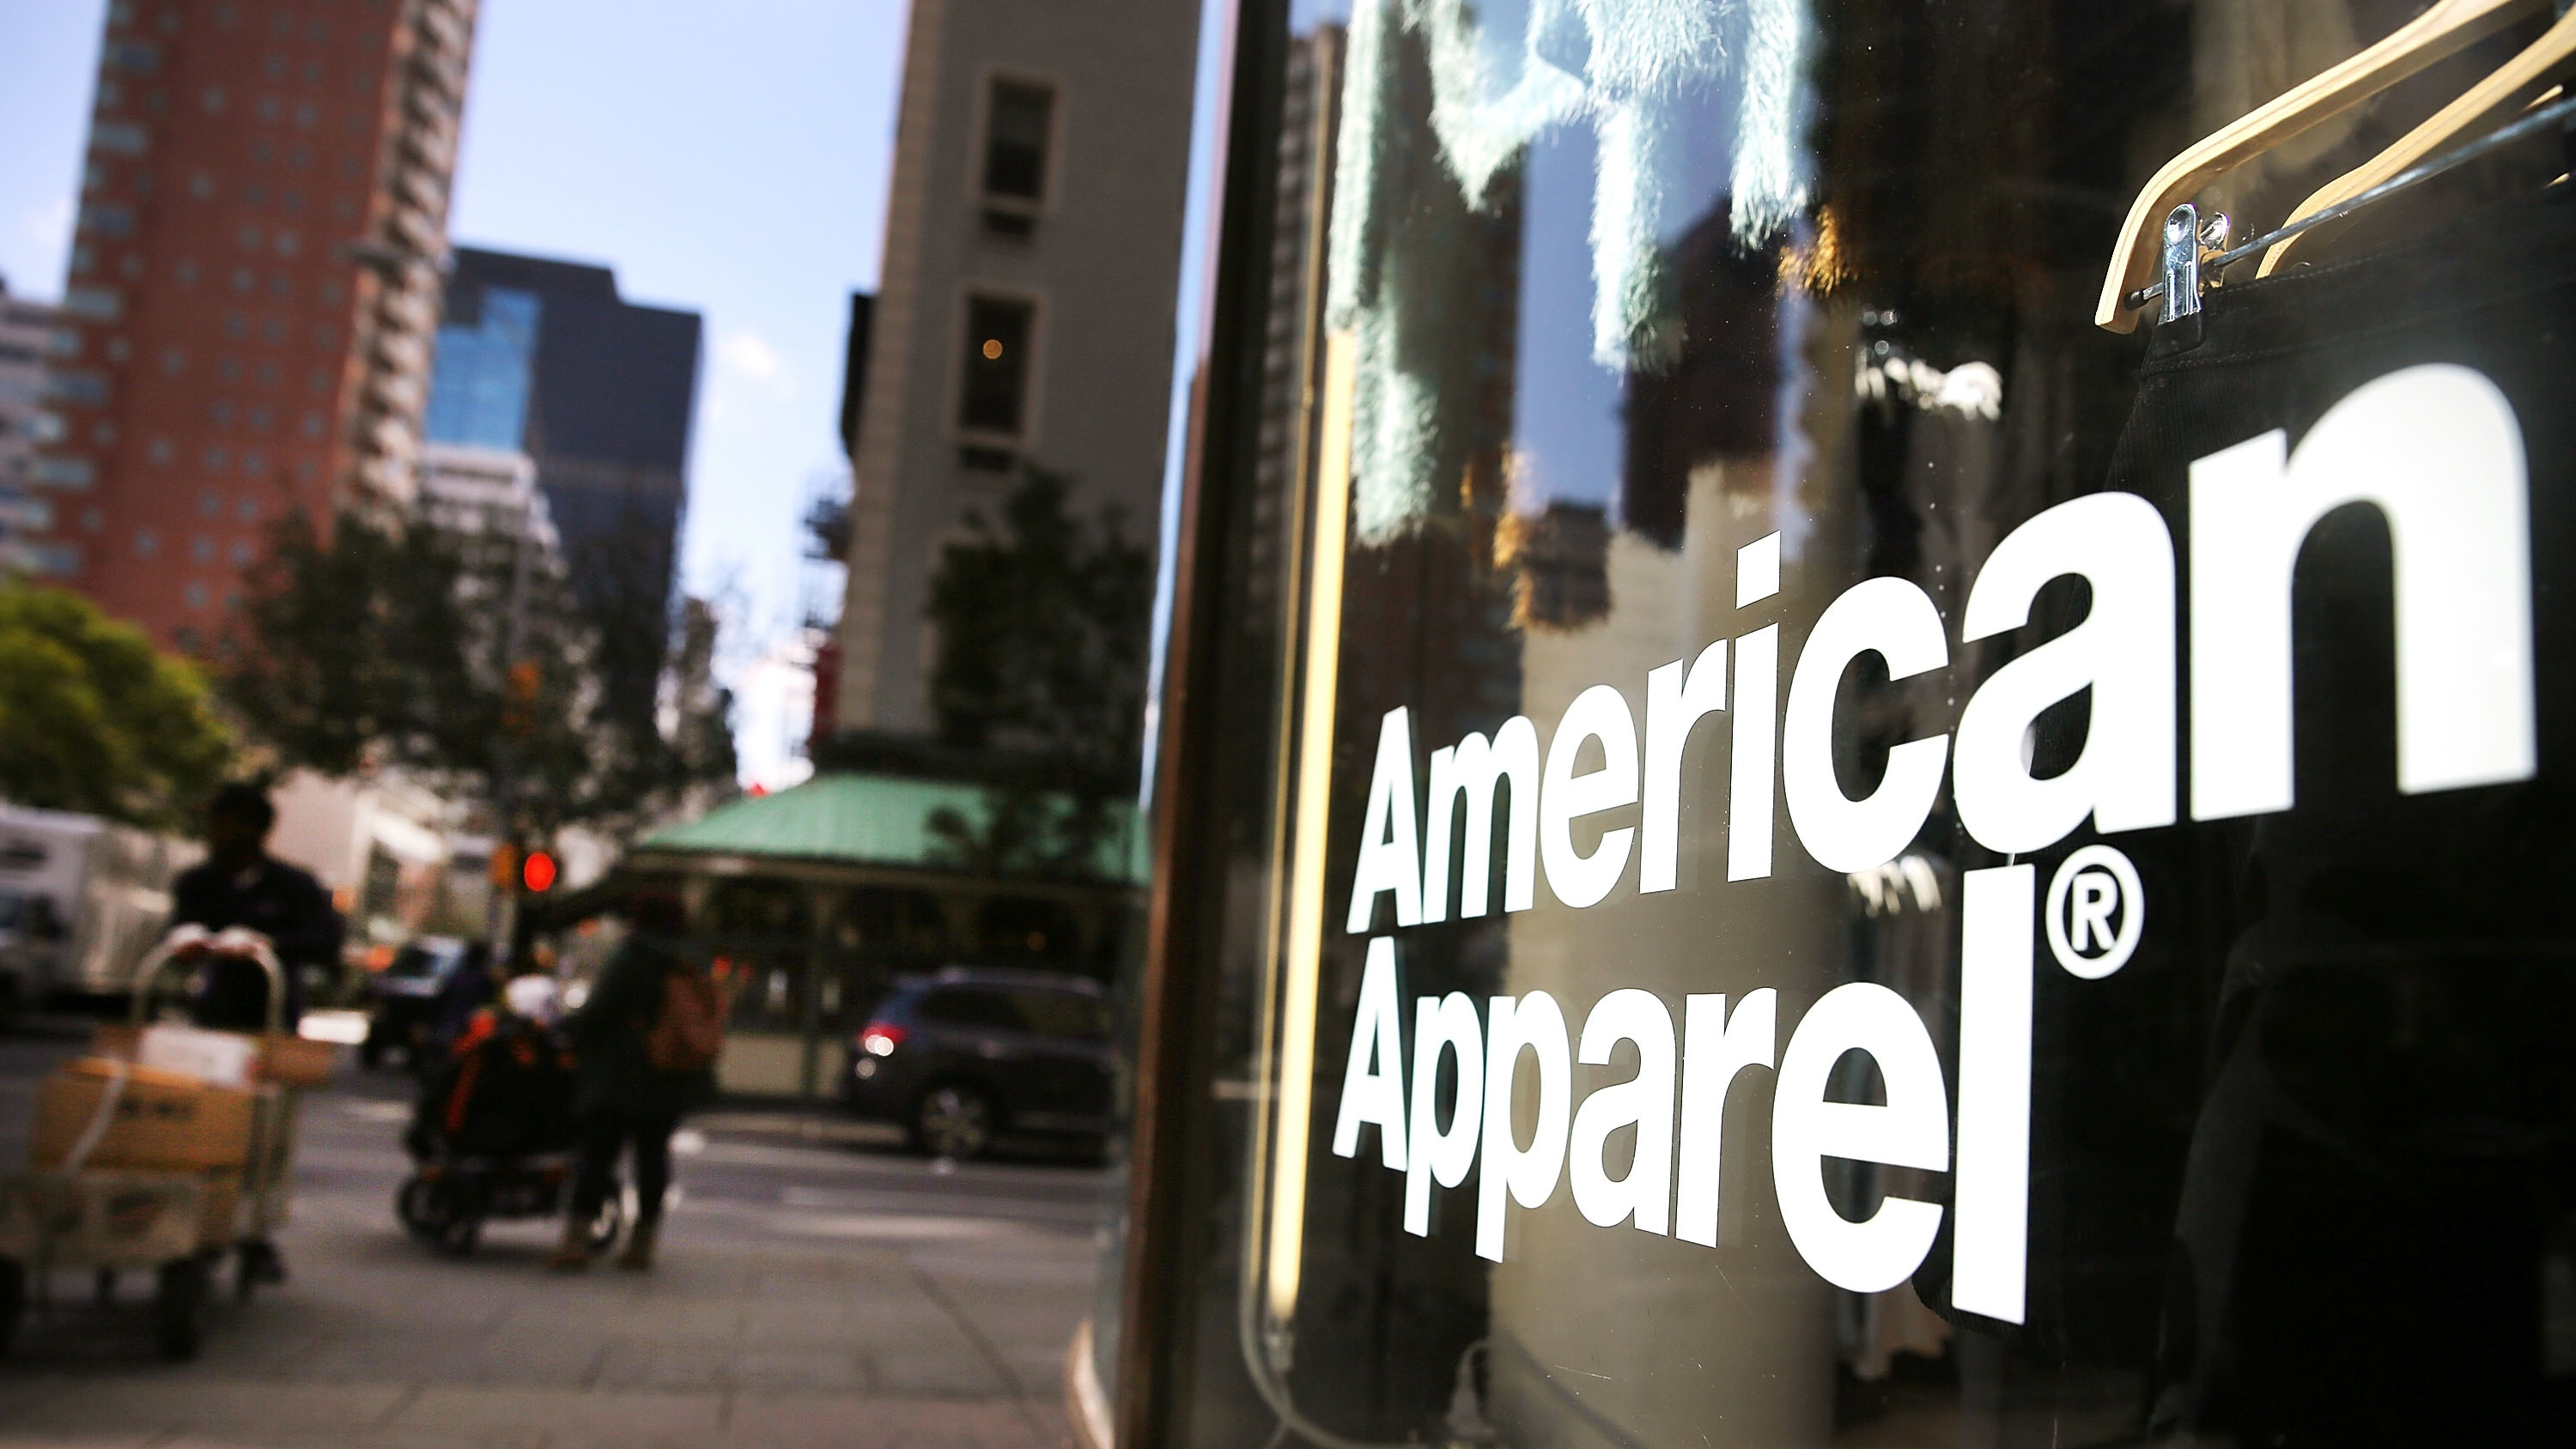 The American Apparel logo is displayed outside of a store on October 5, 2015 in New York City.